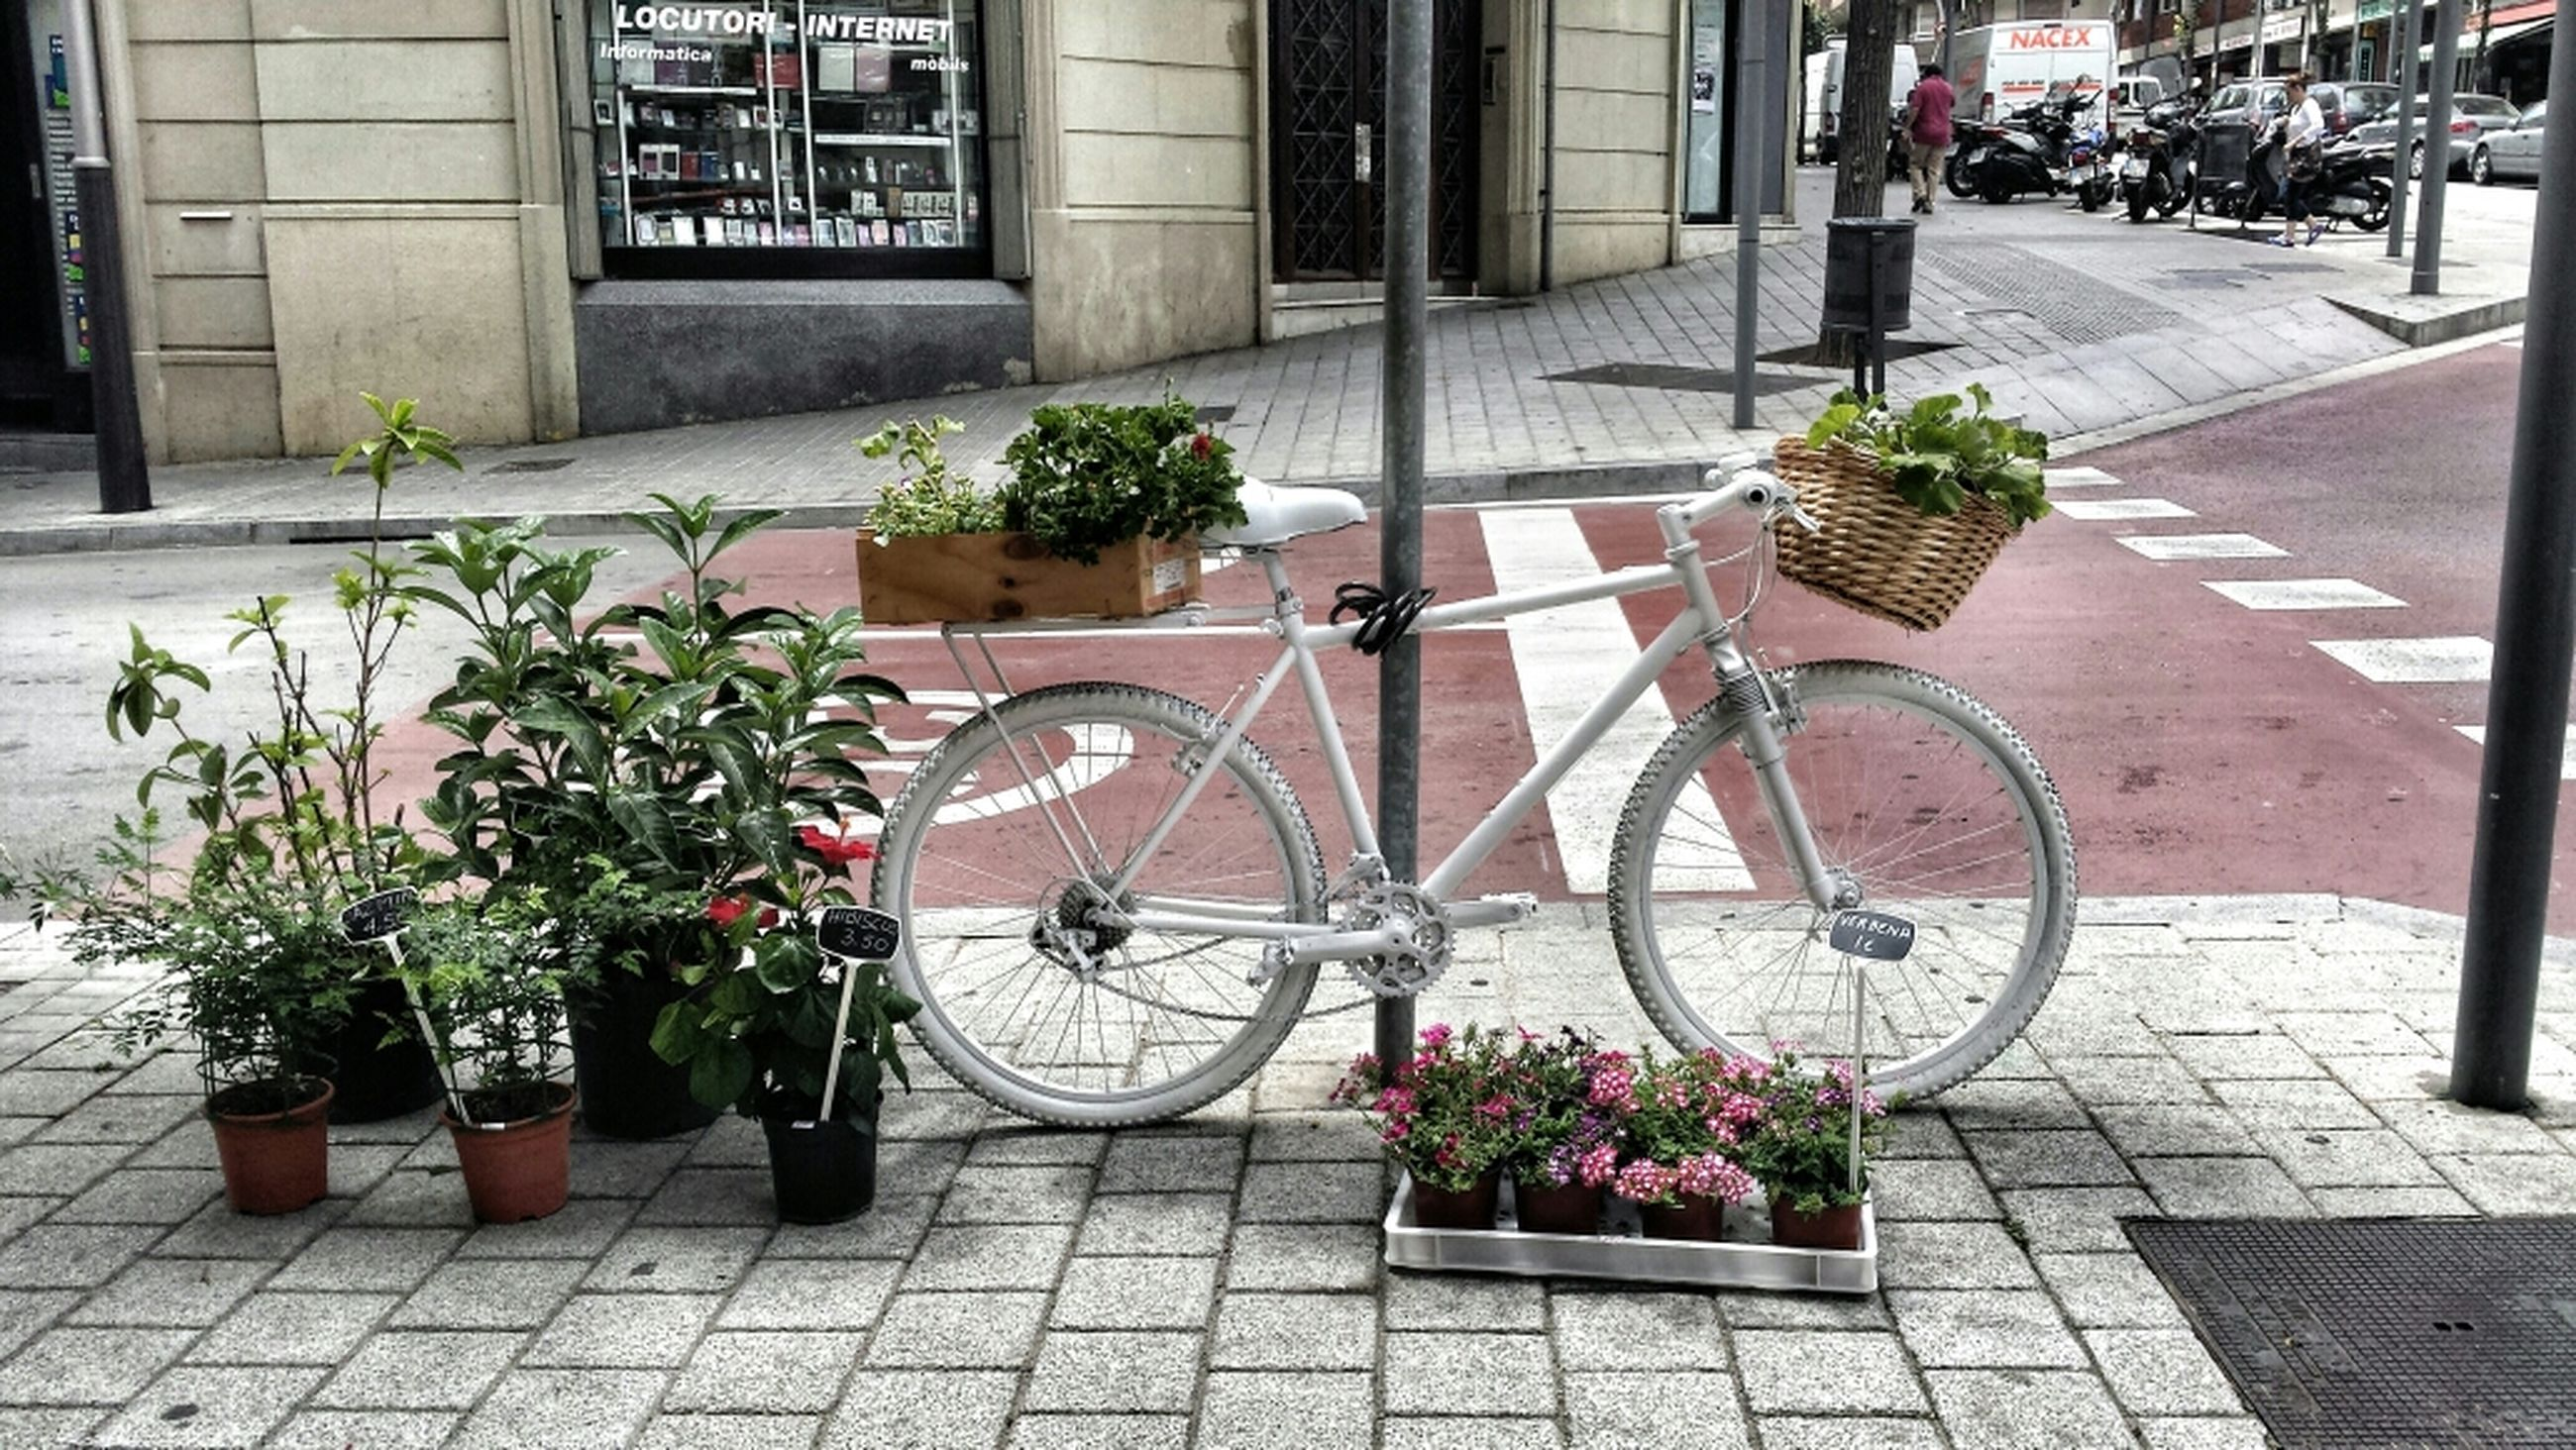 building exterior, architecture, built structure, potted plant, city, sidewalk, bicycle, plant, cobblestone, transportation, street, flower, paving stone, growth, outdoors, footpath, pavement, mode of transport, incidental people, day